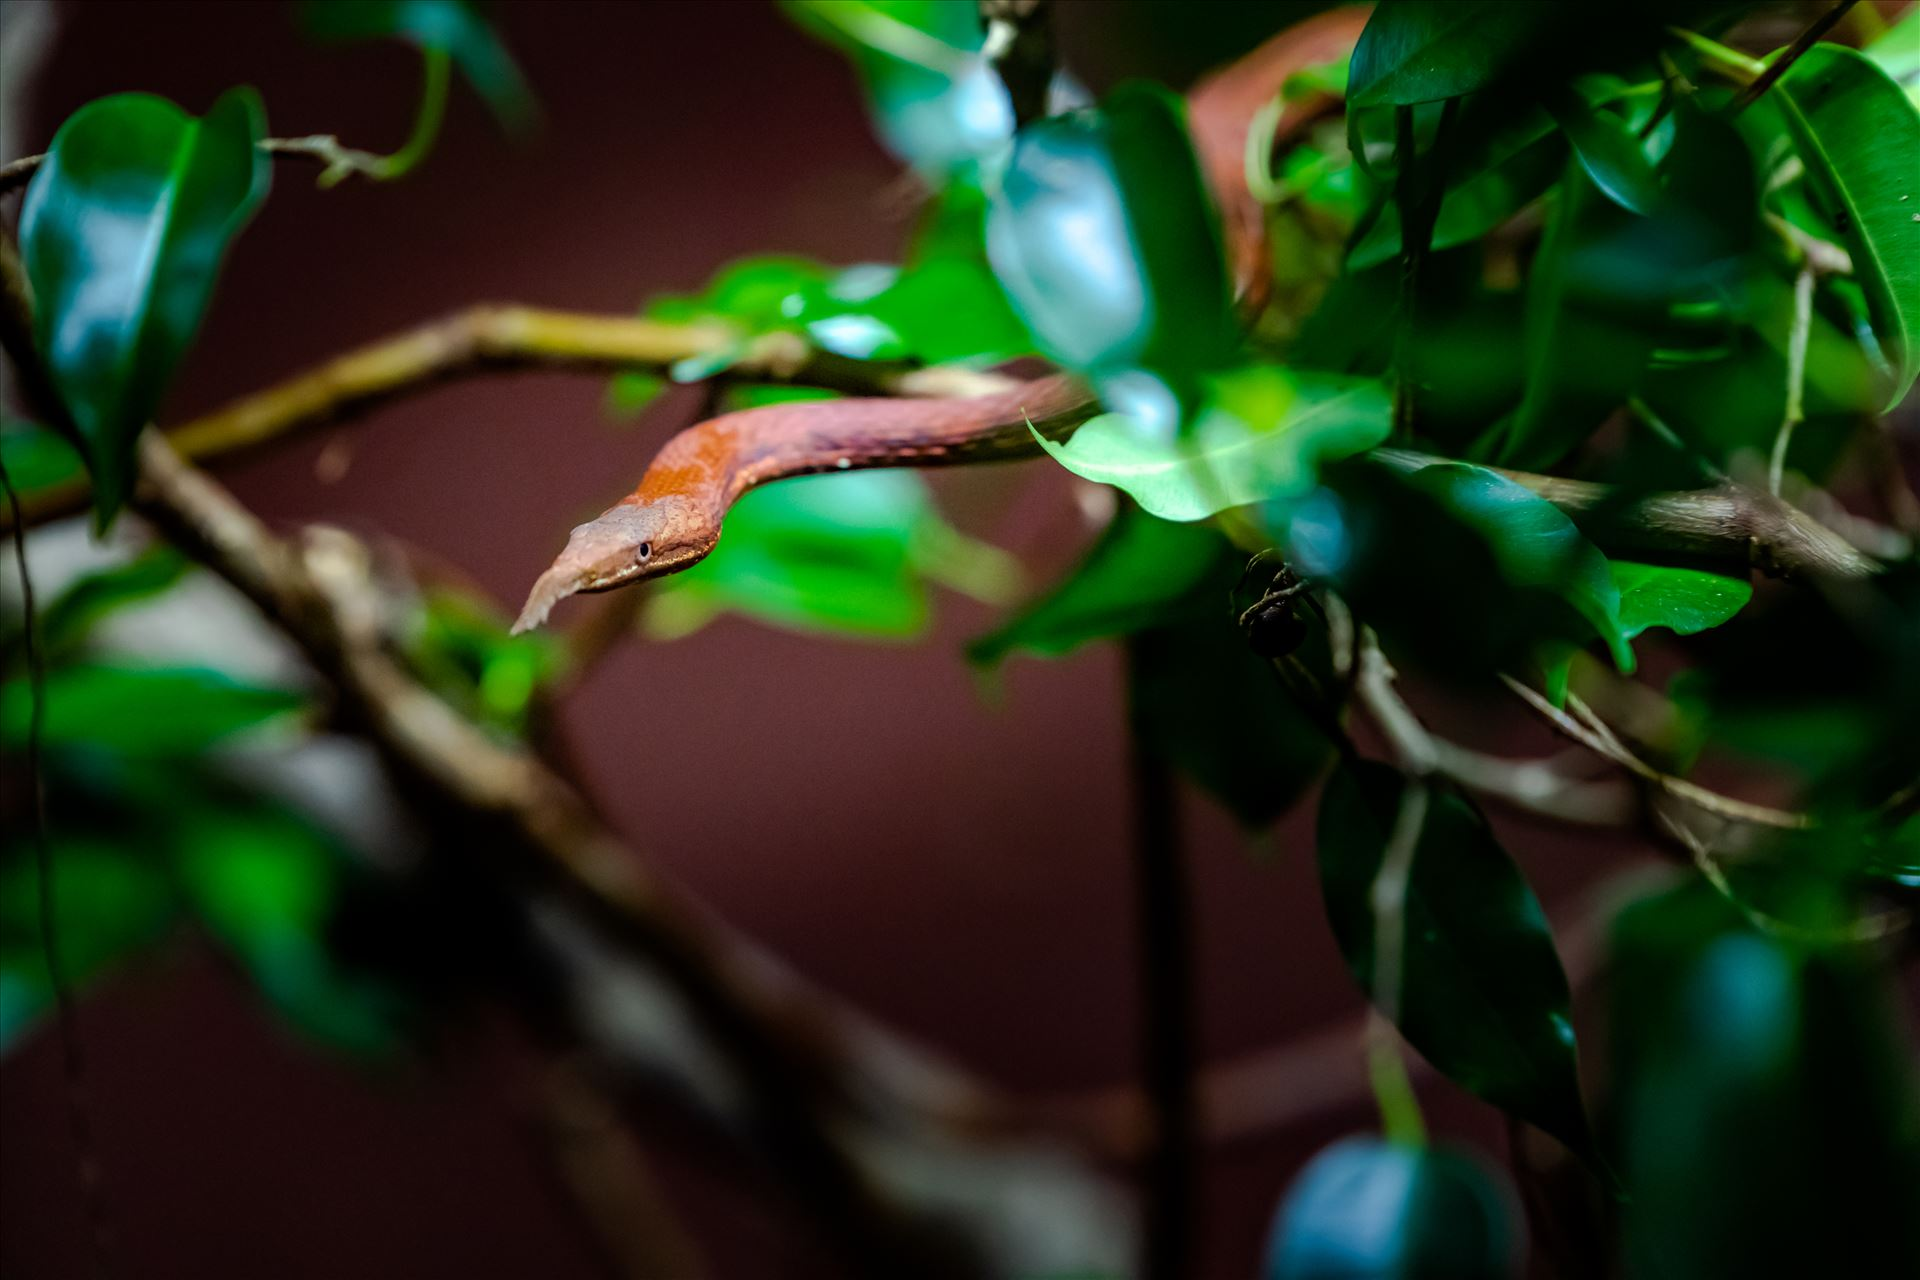 madagascar leaf nosed snake ss as sf.jpg madagascar leaf nosed snake crawling out of small bush. by Terry Kelly Photography